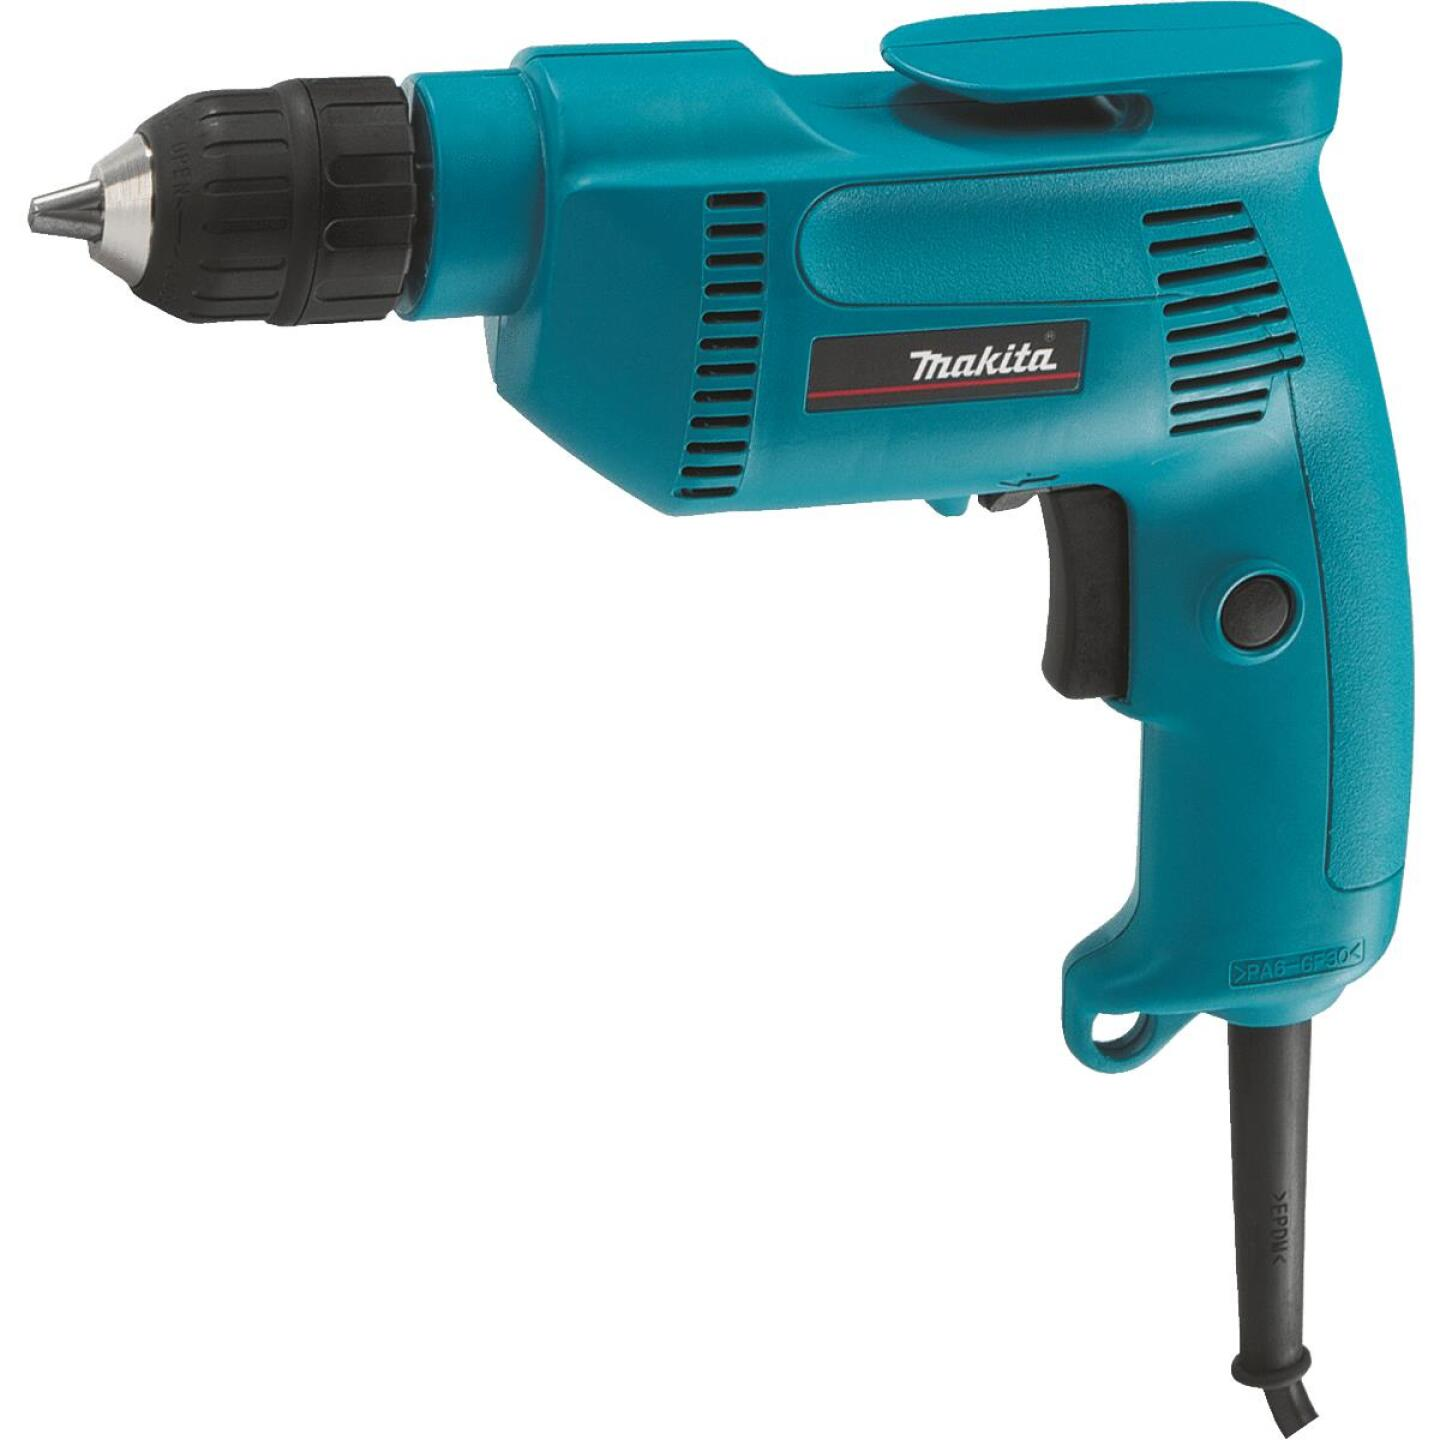 Makita 3/8 In. 4.9-Amp Keyless Electric Drill with Case Image 1